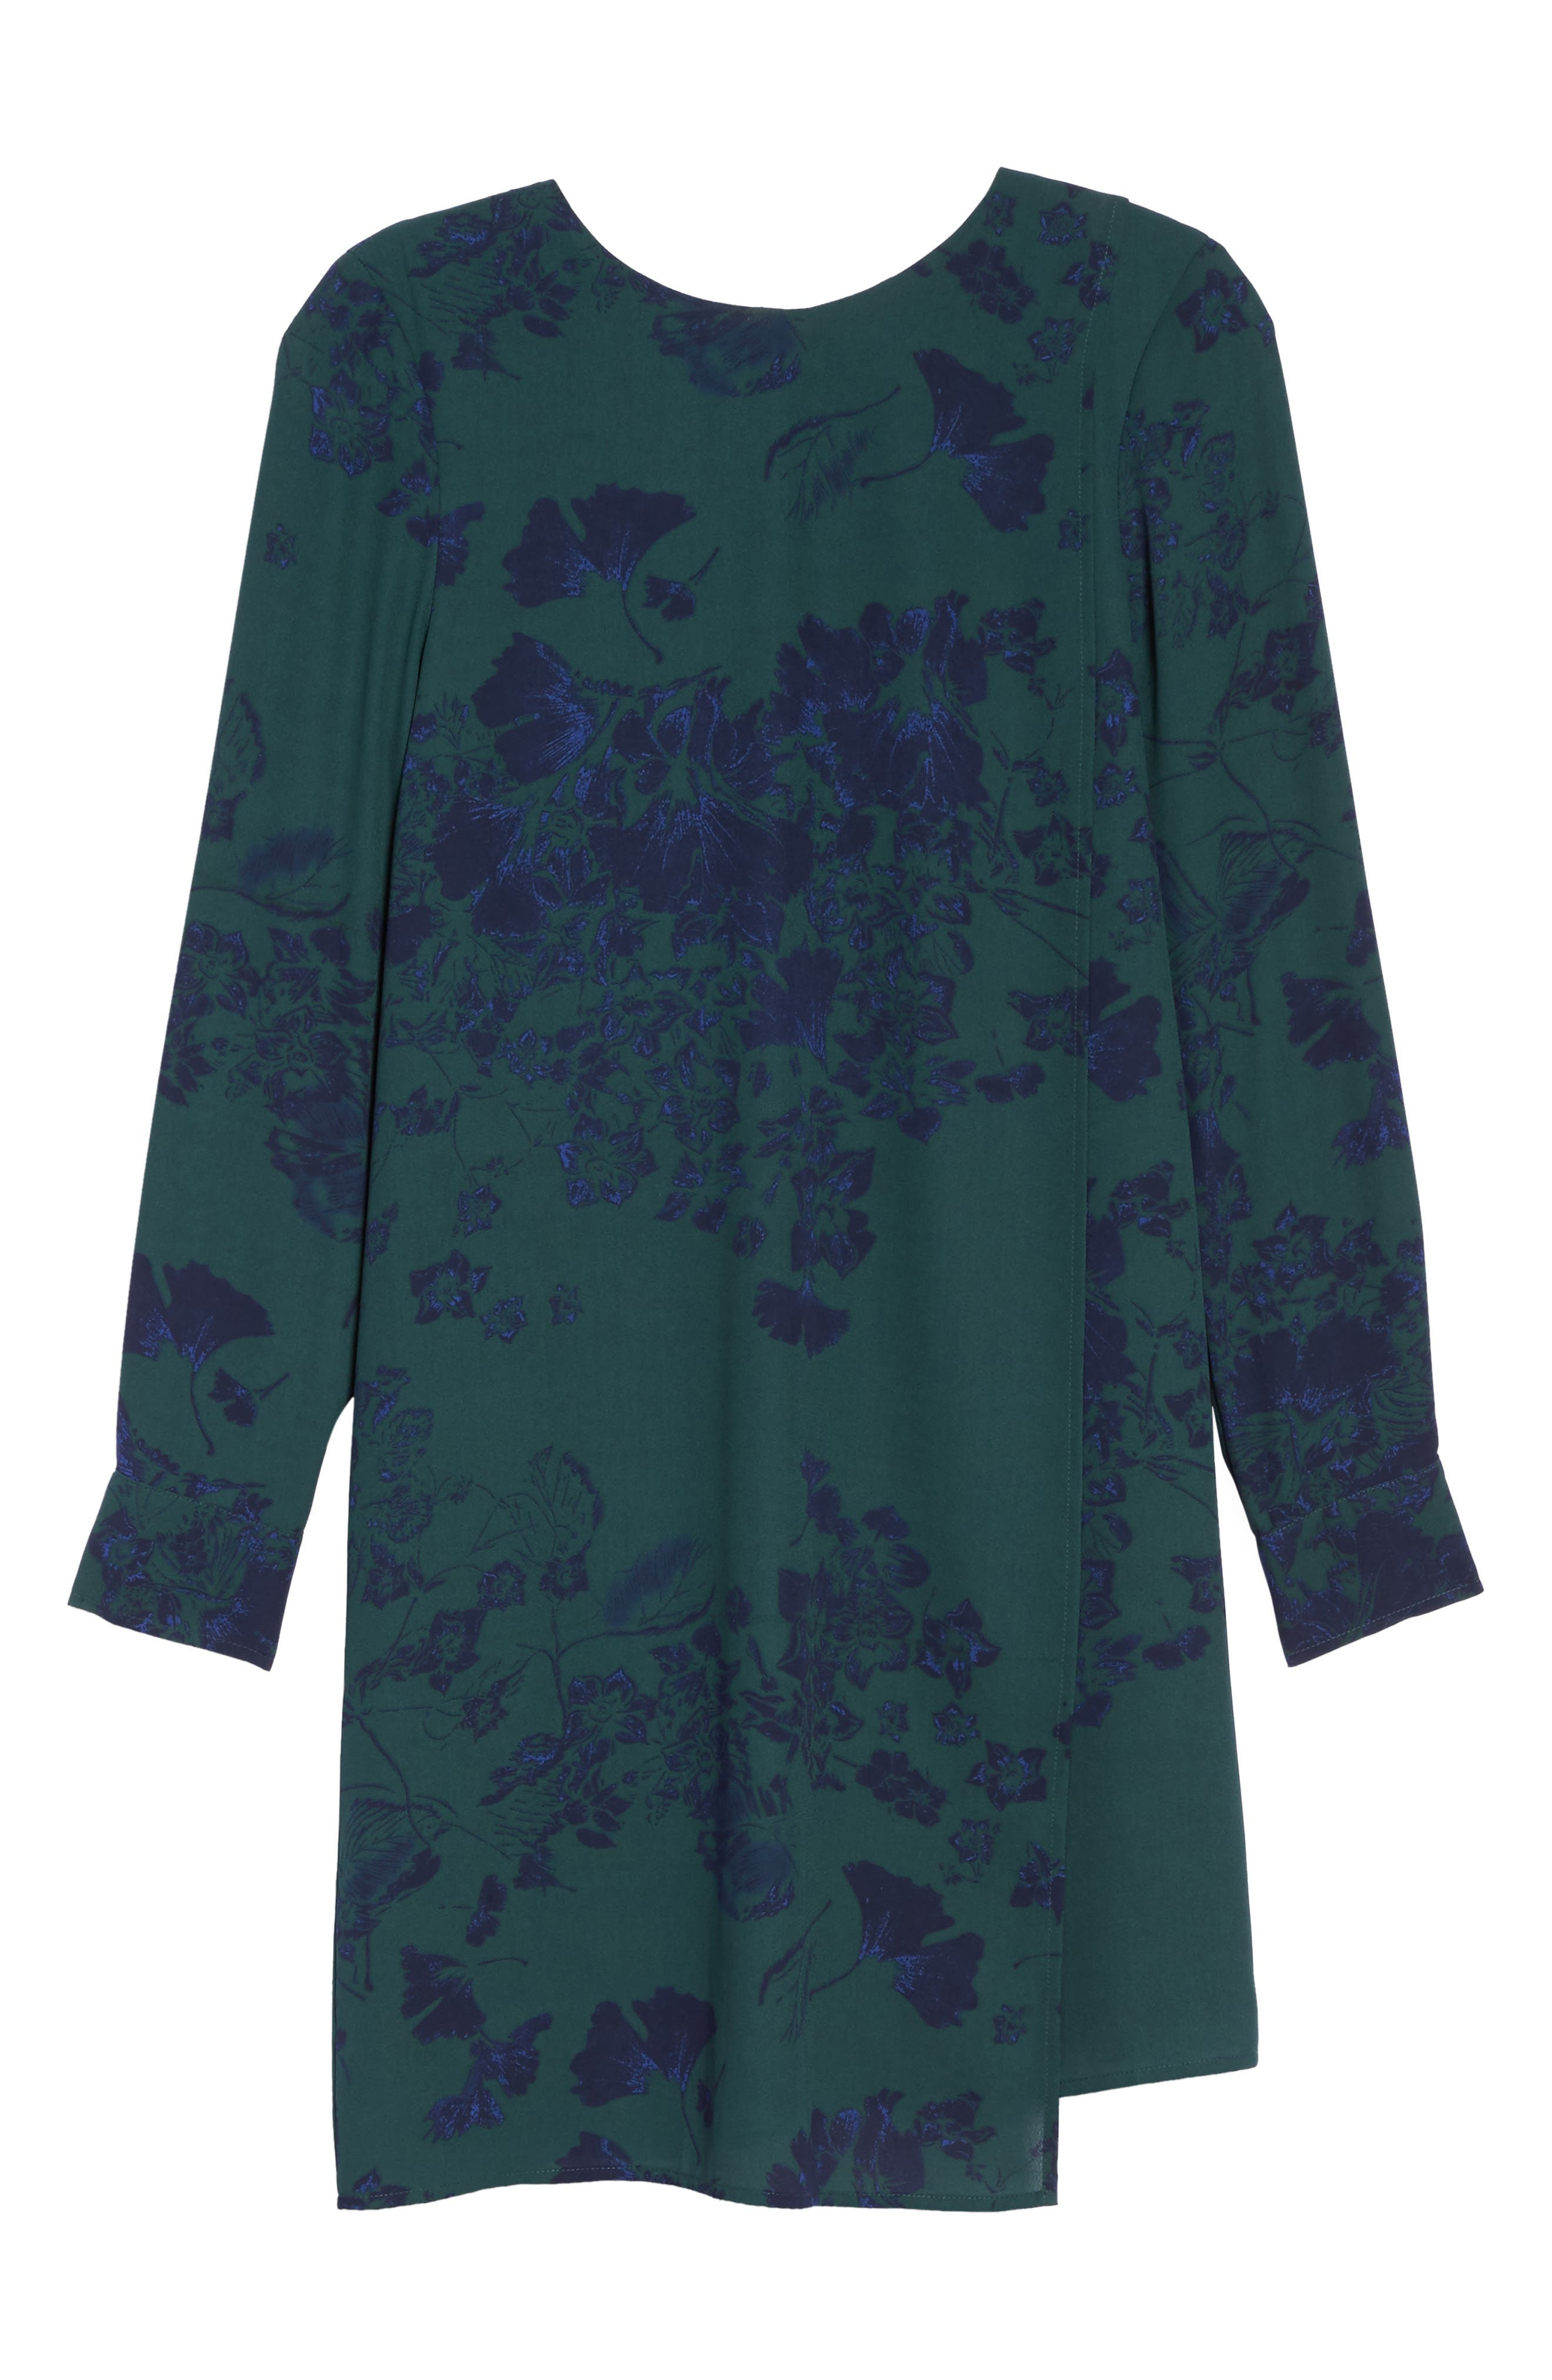 Crossover Shift Dress,                             Alternate thumbnail 6, color,                             Green Fall Floral